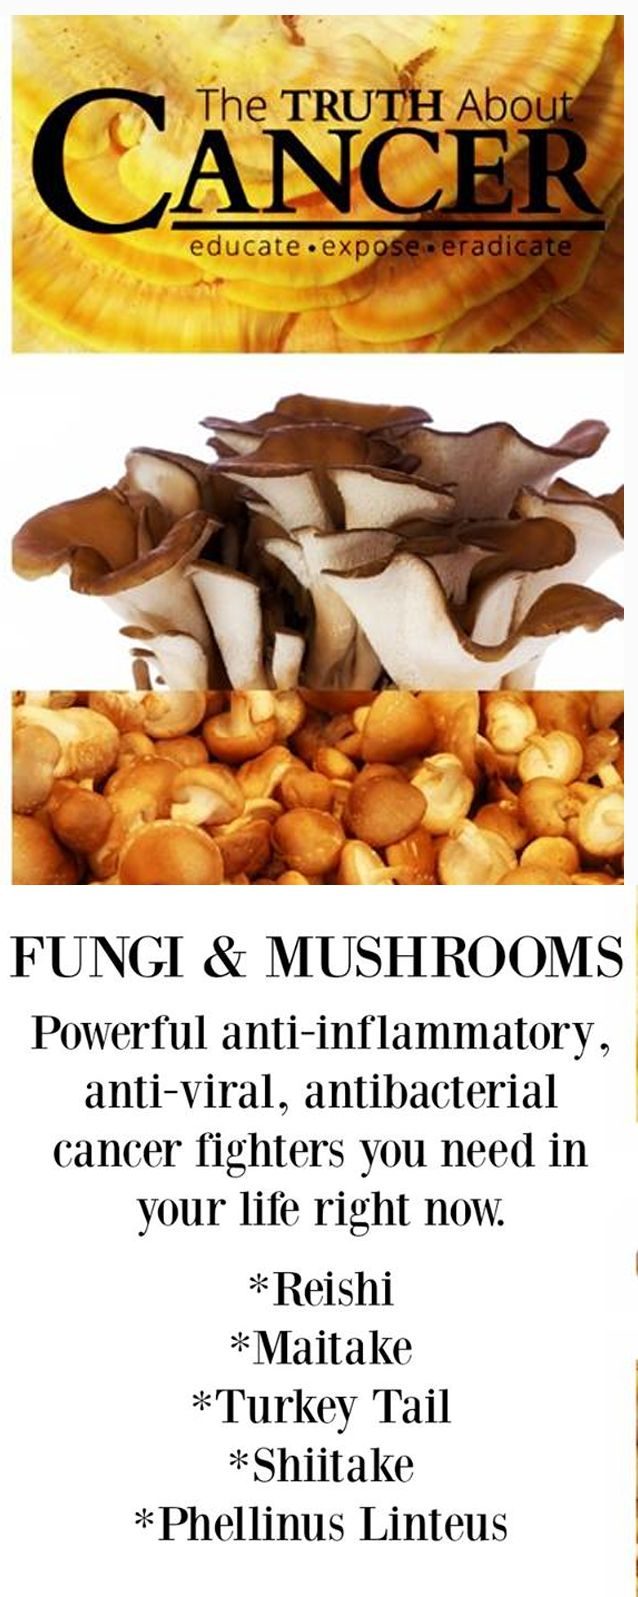 These five mushrooms have boost immunity and are naturally anti-viral, anti-inflammatory, antioxidant, antibacterial, and anti-cancer!  Join us on The Truth About Cancer for more great info!